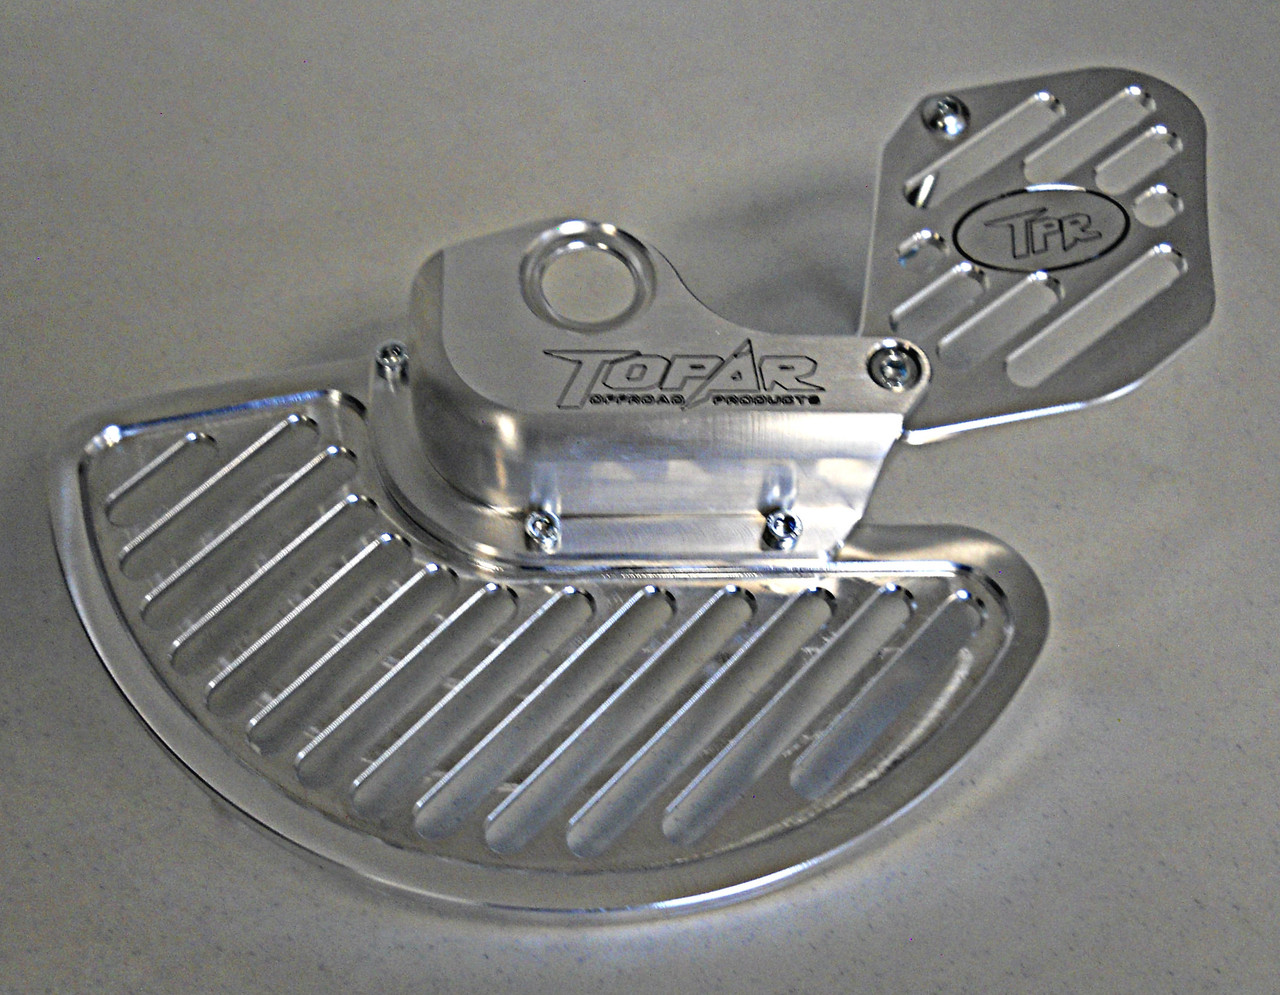 Topar Racing Front Brake Rotor Disc Guard for 2015-2020 HUSQVARNA with WP Forks (shown here with the Aluminum fin and optional caliper guard